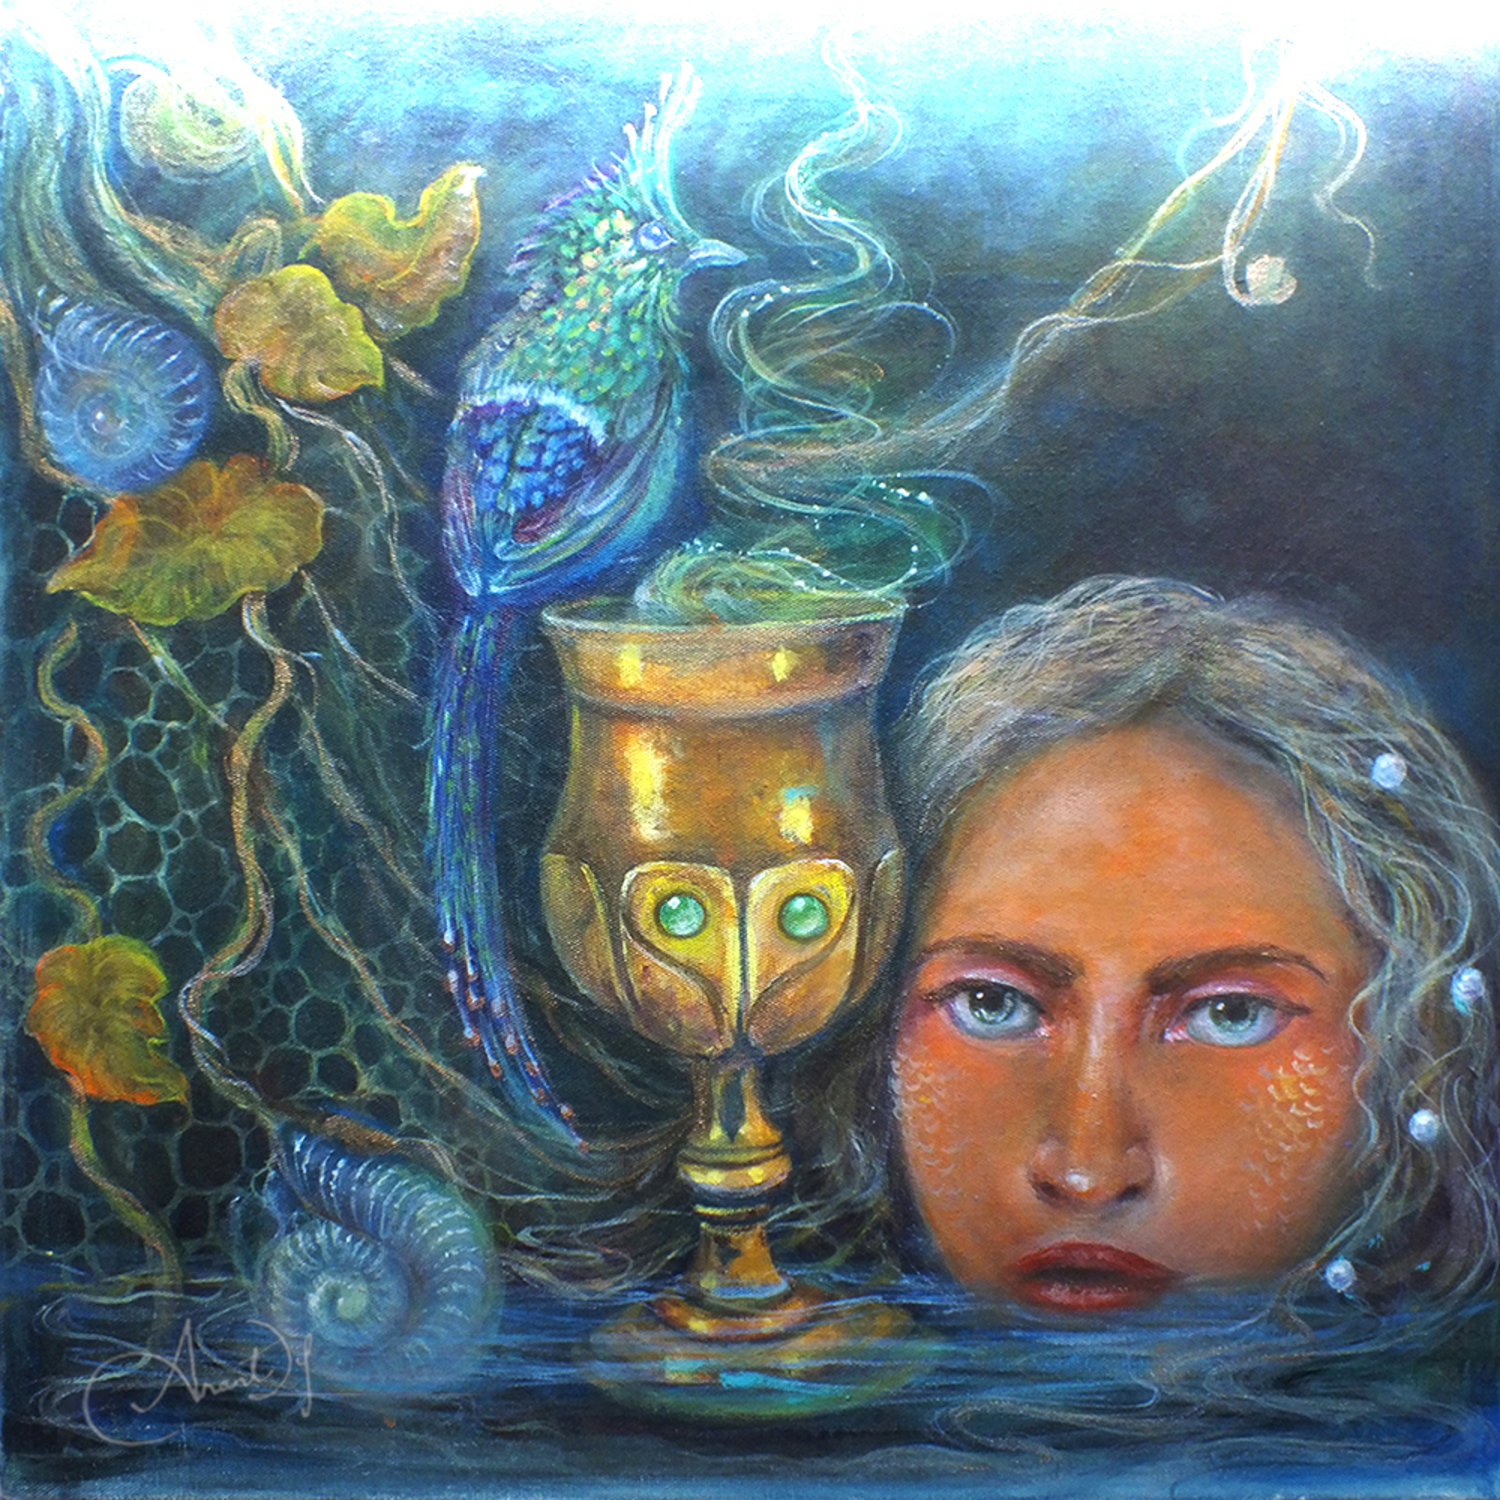 Goblet of Life Artwork by Anantdip Kaur